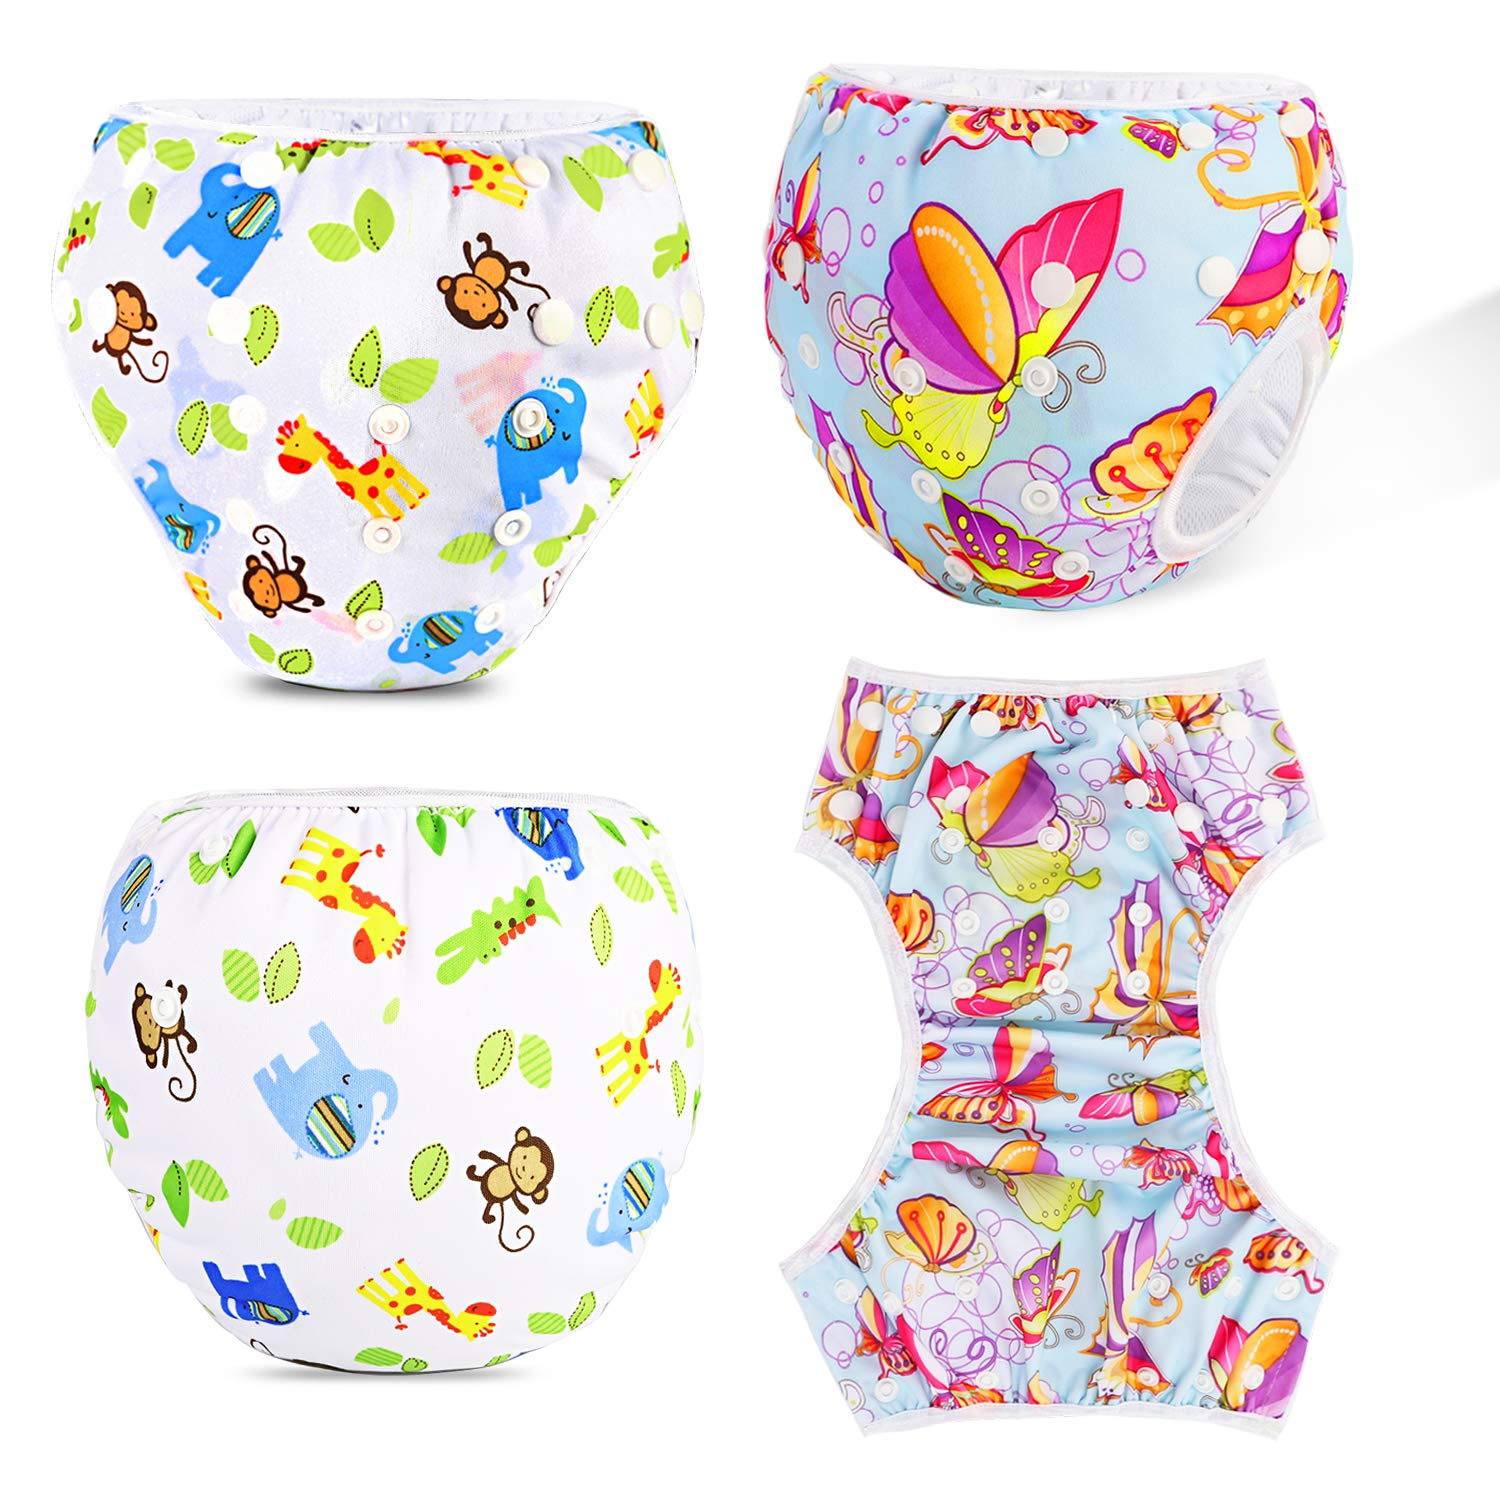 Perfect for Shower Beach /& Swimming Lessons Phogary Swim Nappies Reusable Baby Swim Nappy for 0-3yrs Weight 3-15kg Flog + Ice Cream 2-Pack